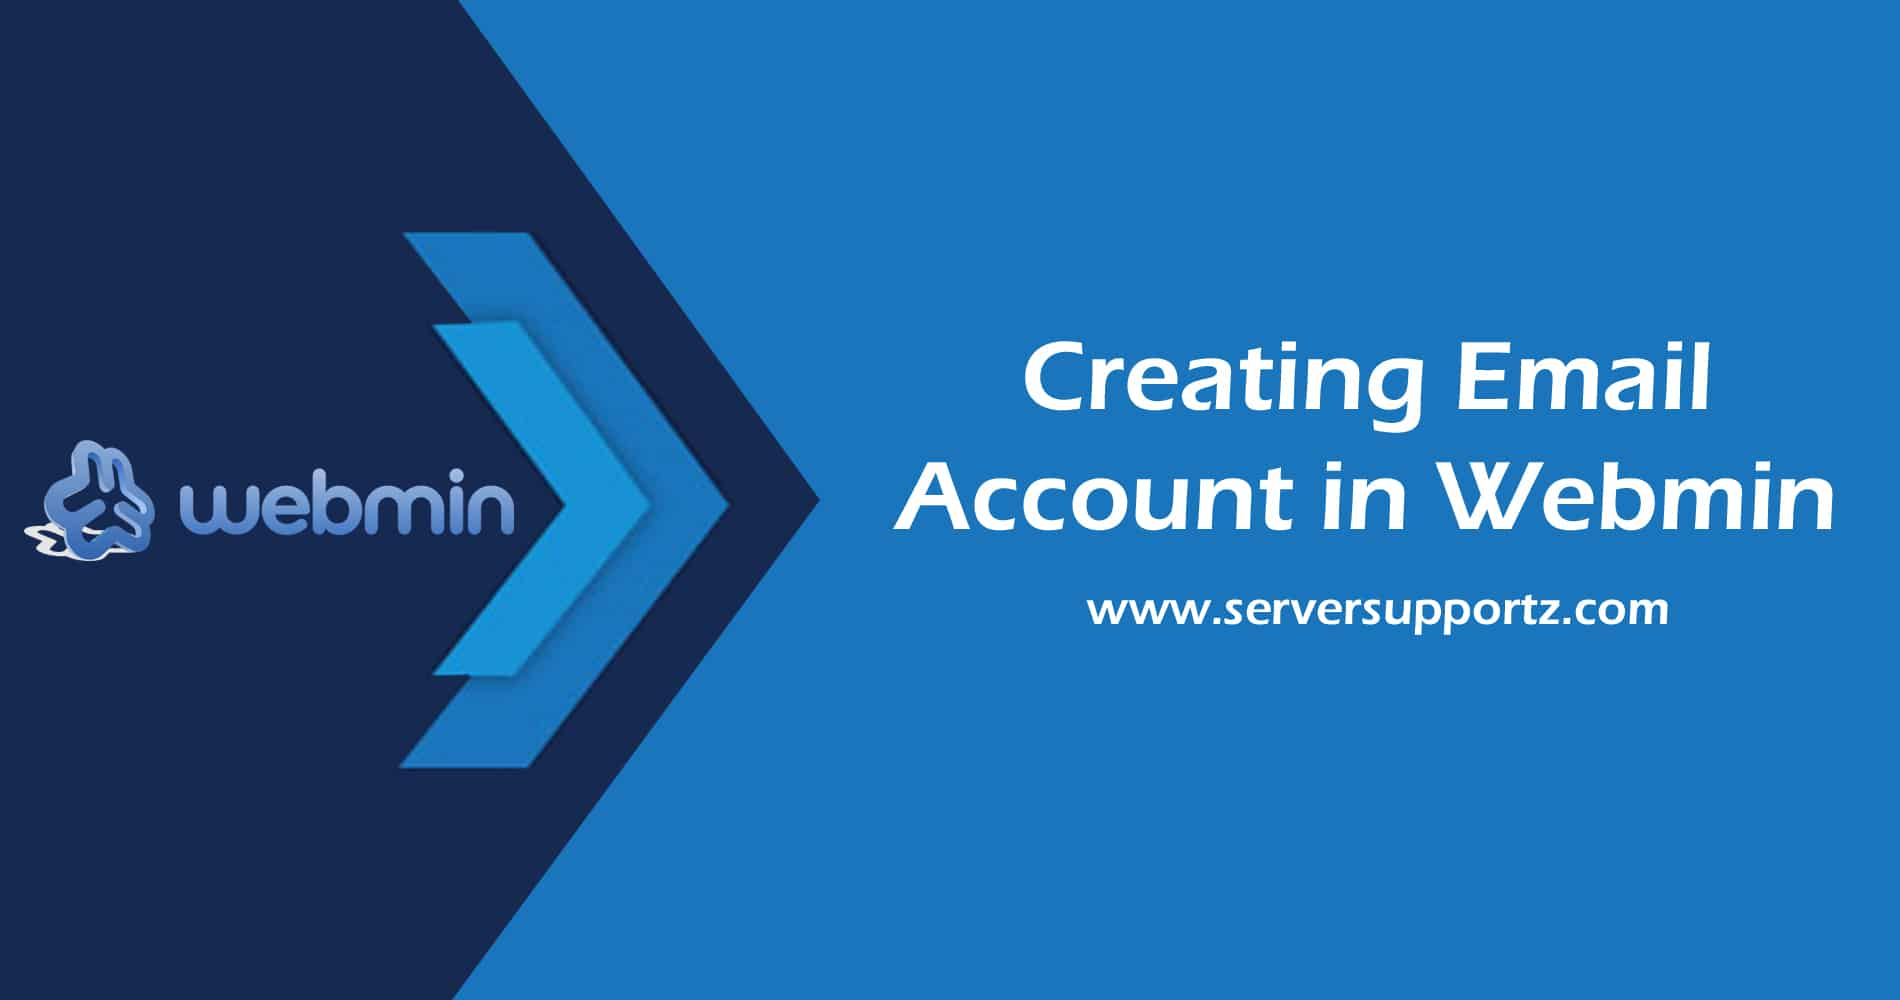 How To Create Email Account In Webmin